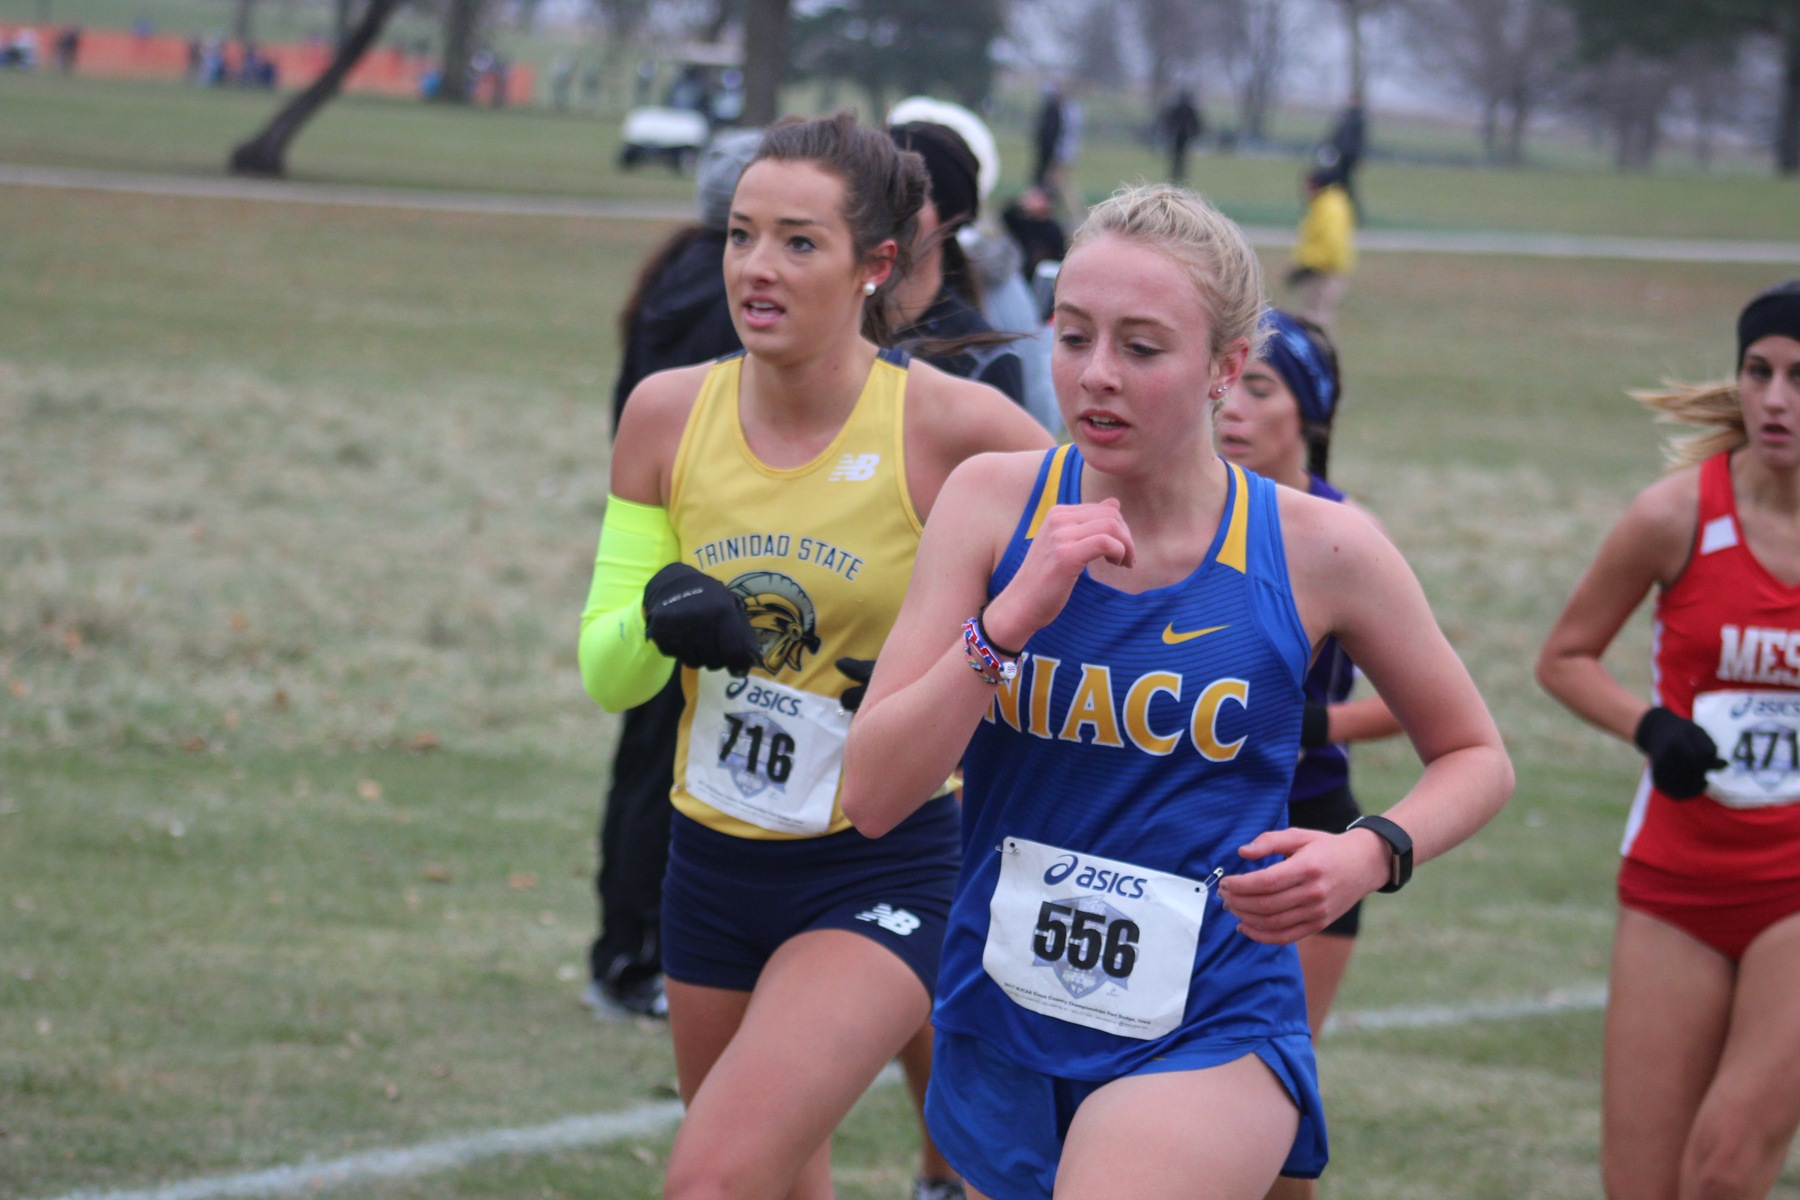 NIACC's Julia Dunlavey runs at the national meet in Fort Dodge on Saturday.